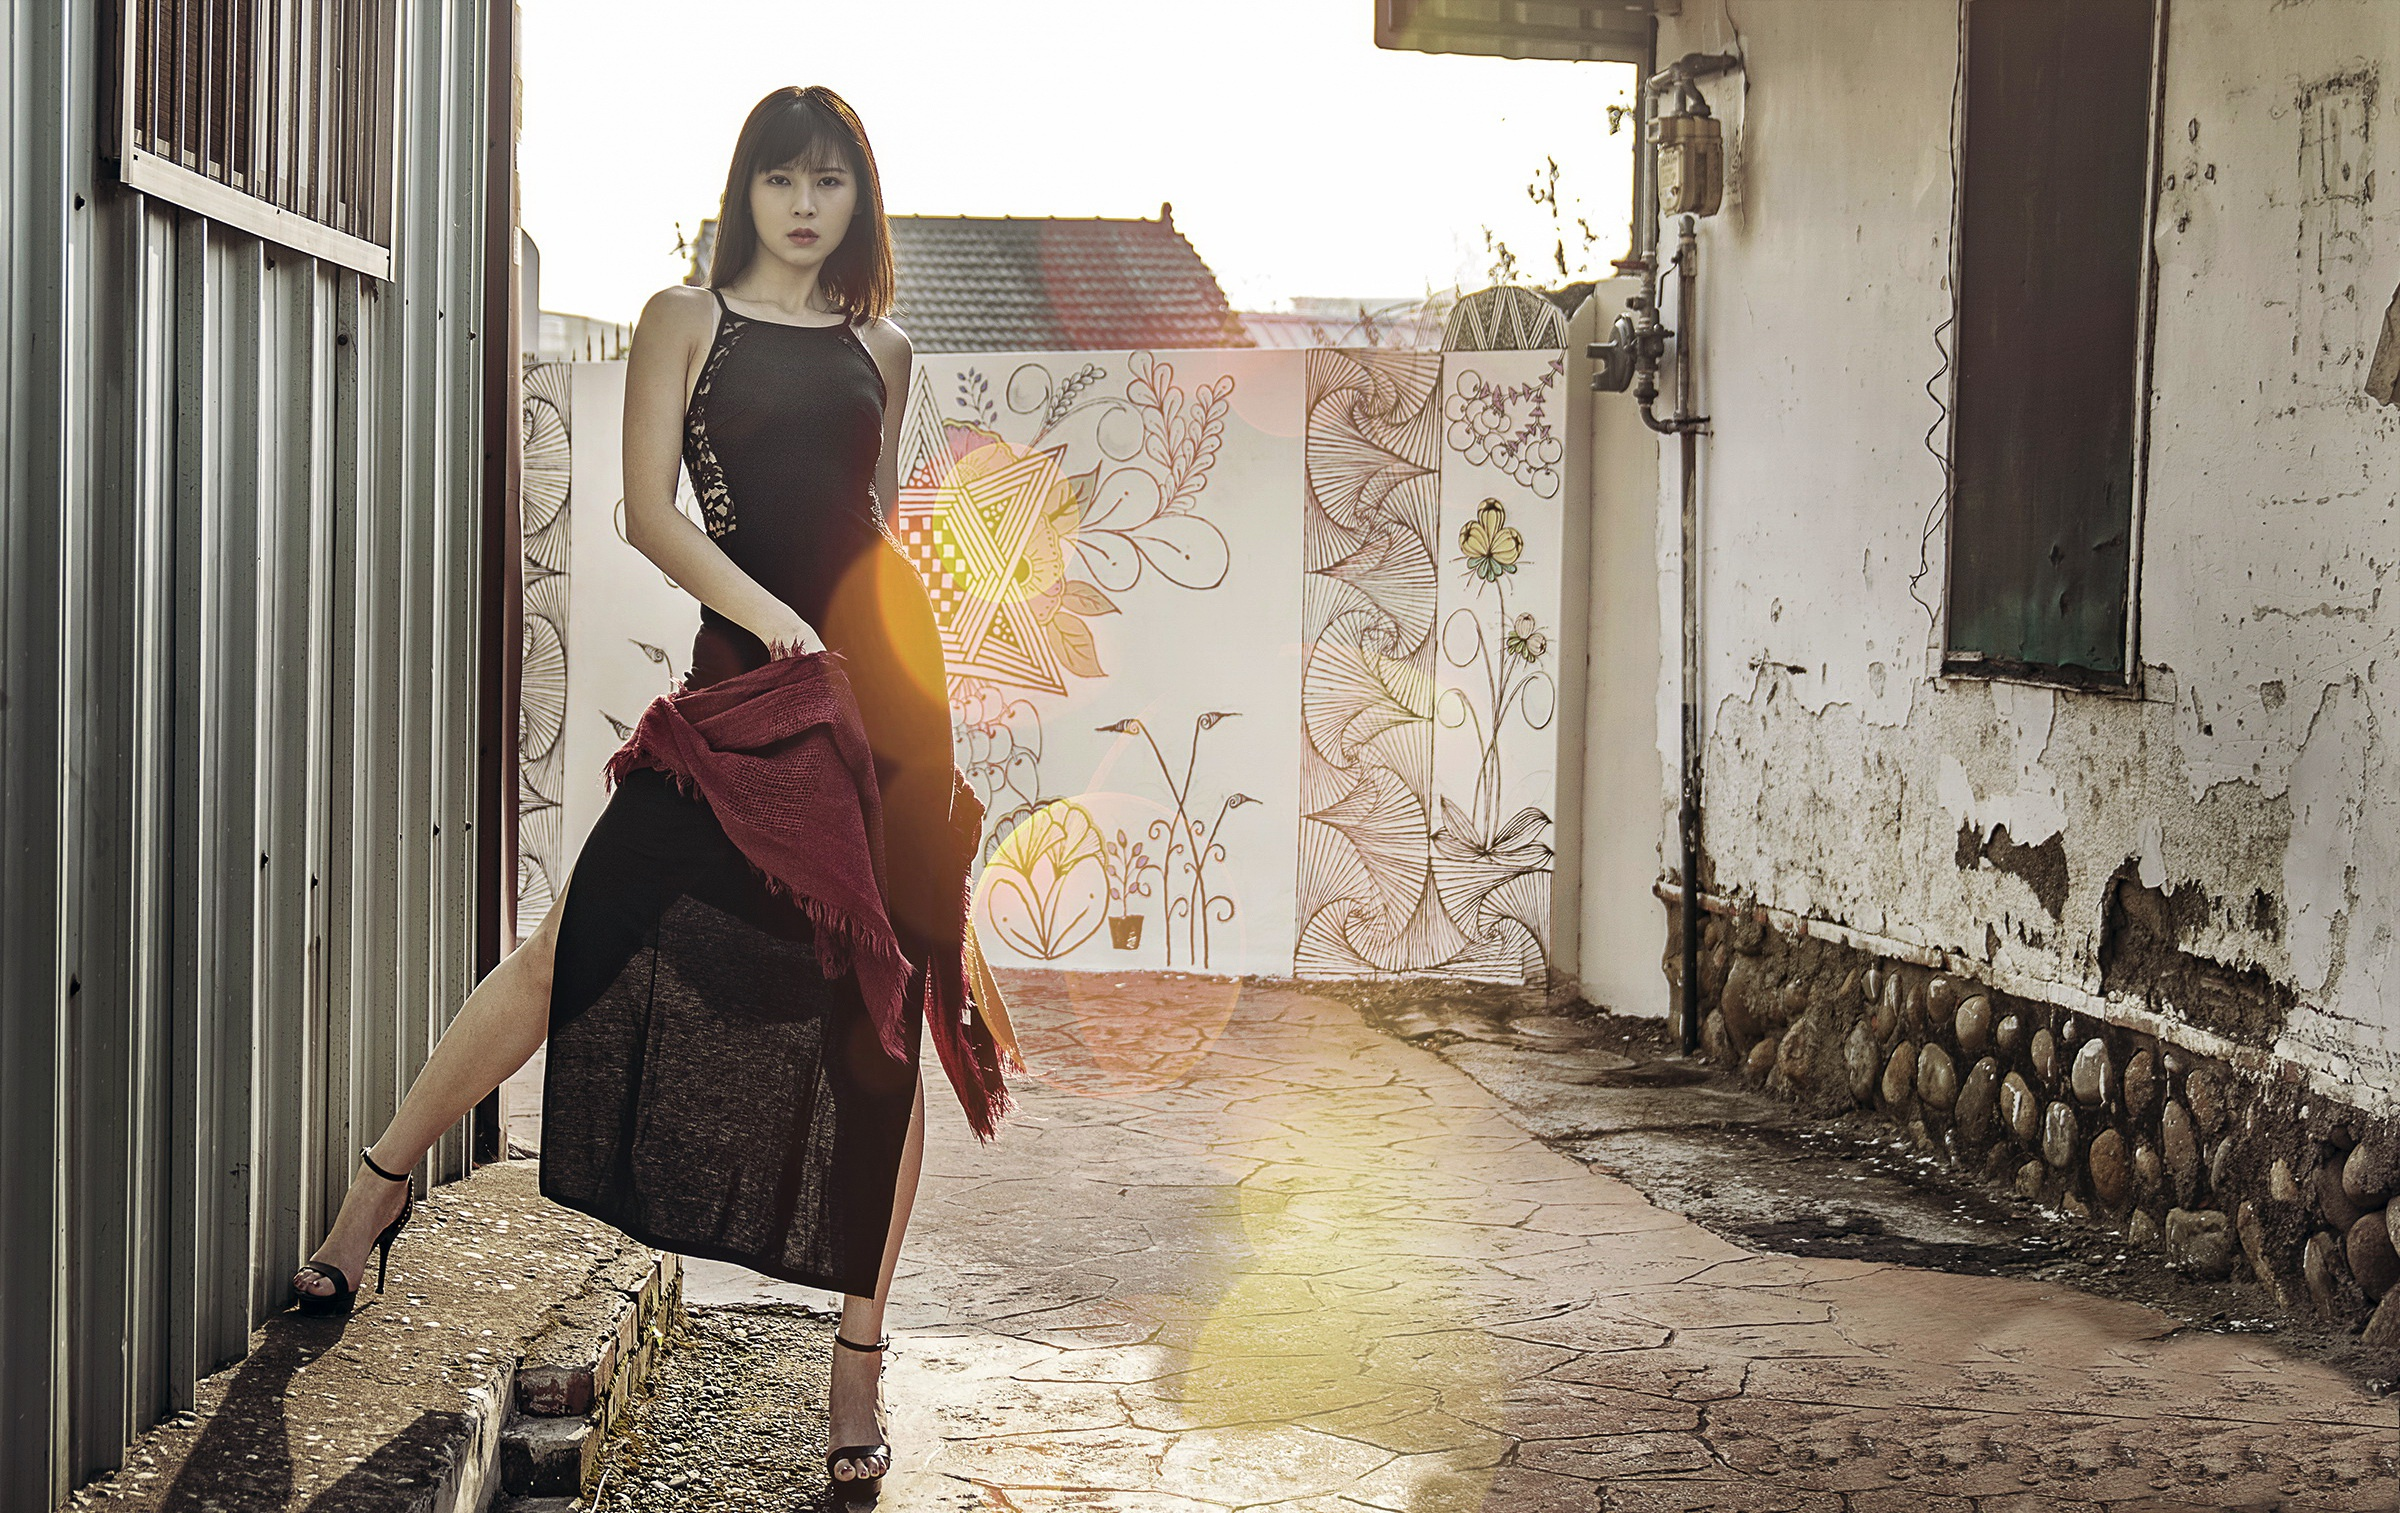 People 2400x1513 Asian model women short hair brunette black high-heels black dress red scarfs wall graffiti containers rooftops house